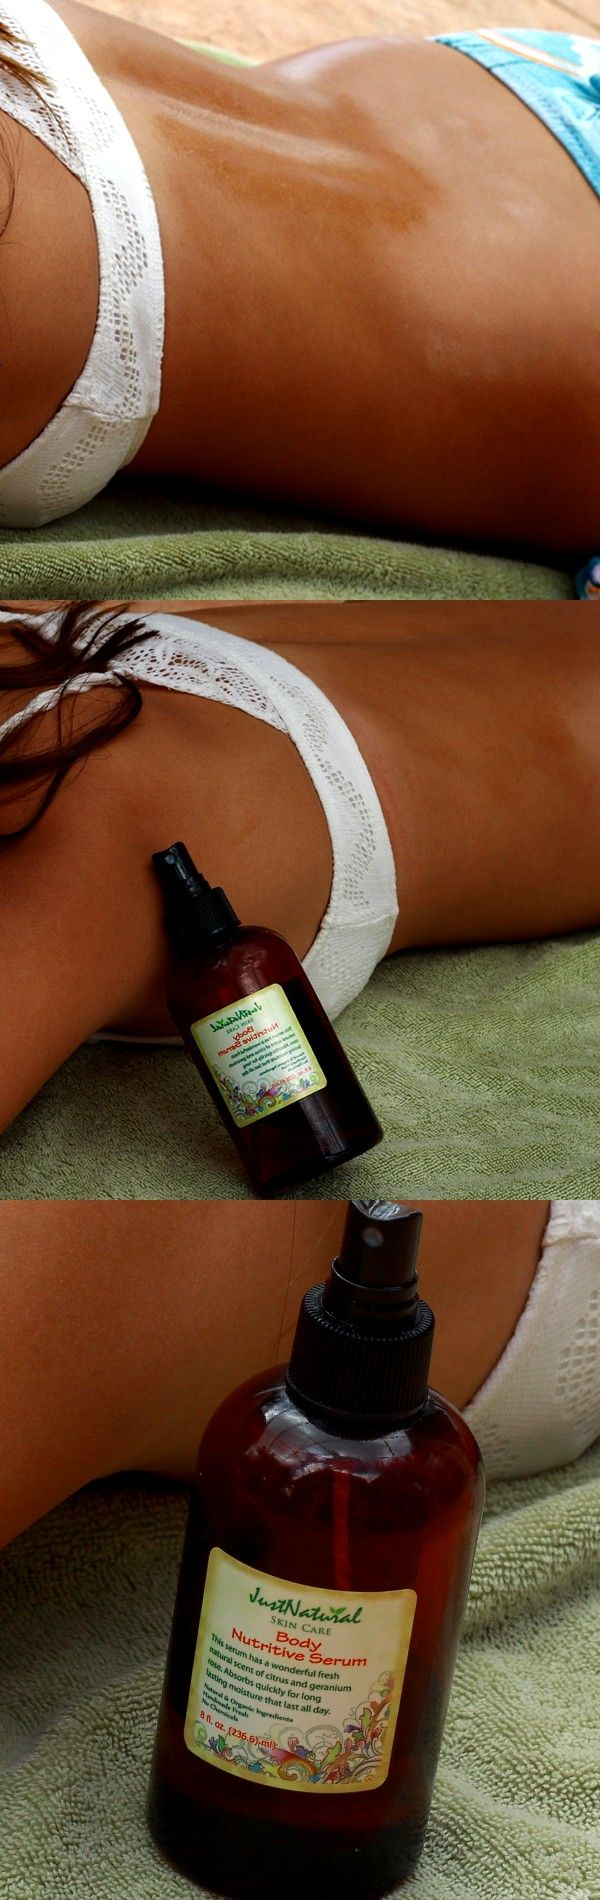 I have been using the body serum for the last 4 weekends outdoors and I am amazed at how my skin has tanned so beautifully! This has helped to fade so far many of my old stretch marks. I hope this company never changes the formula.